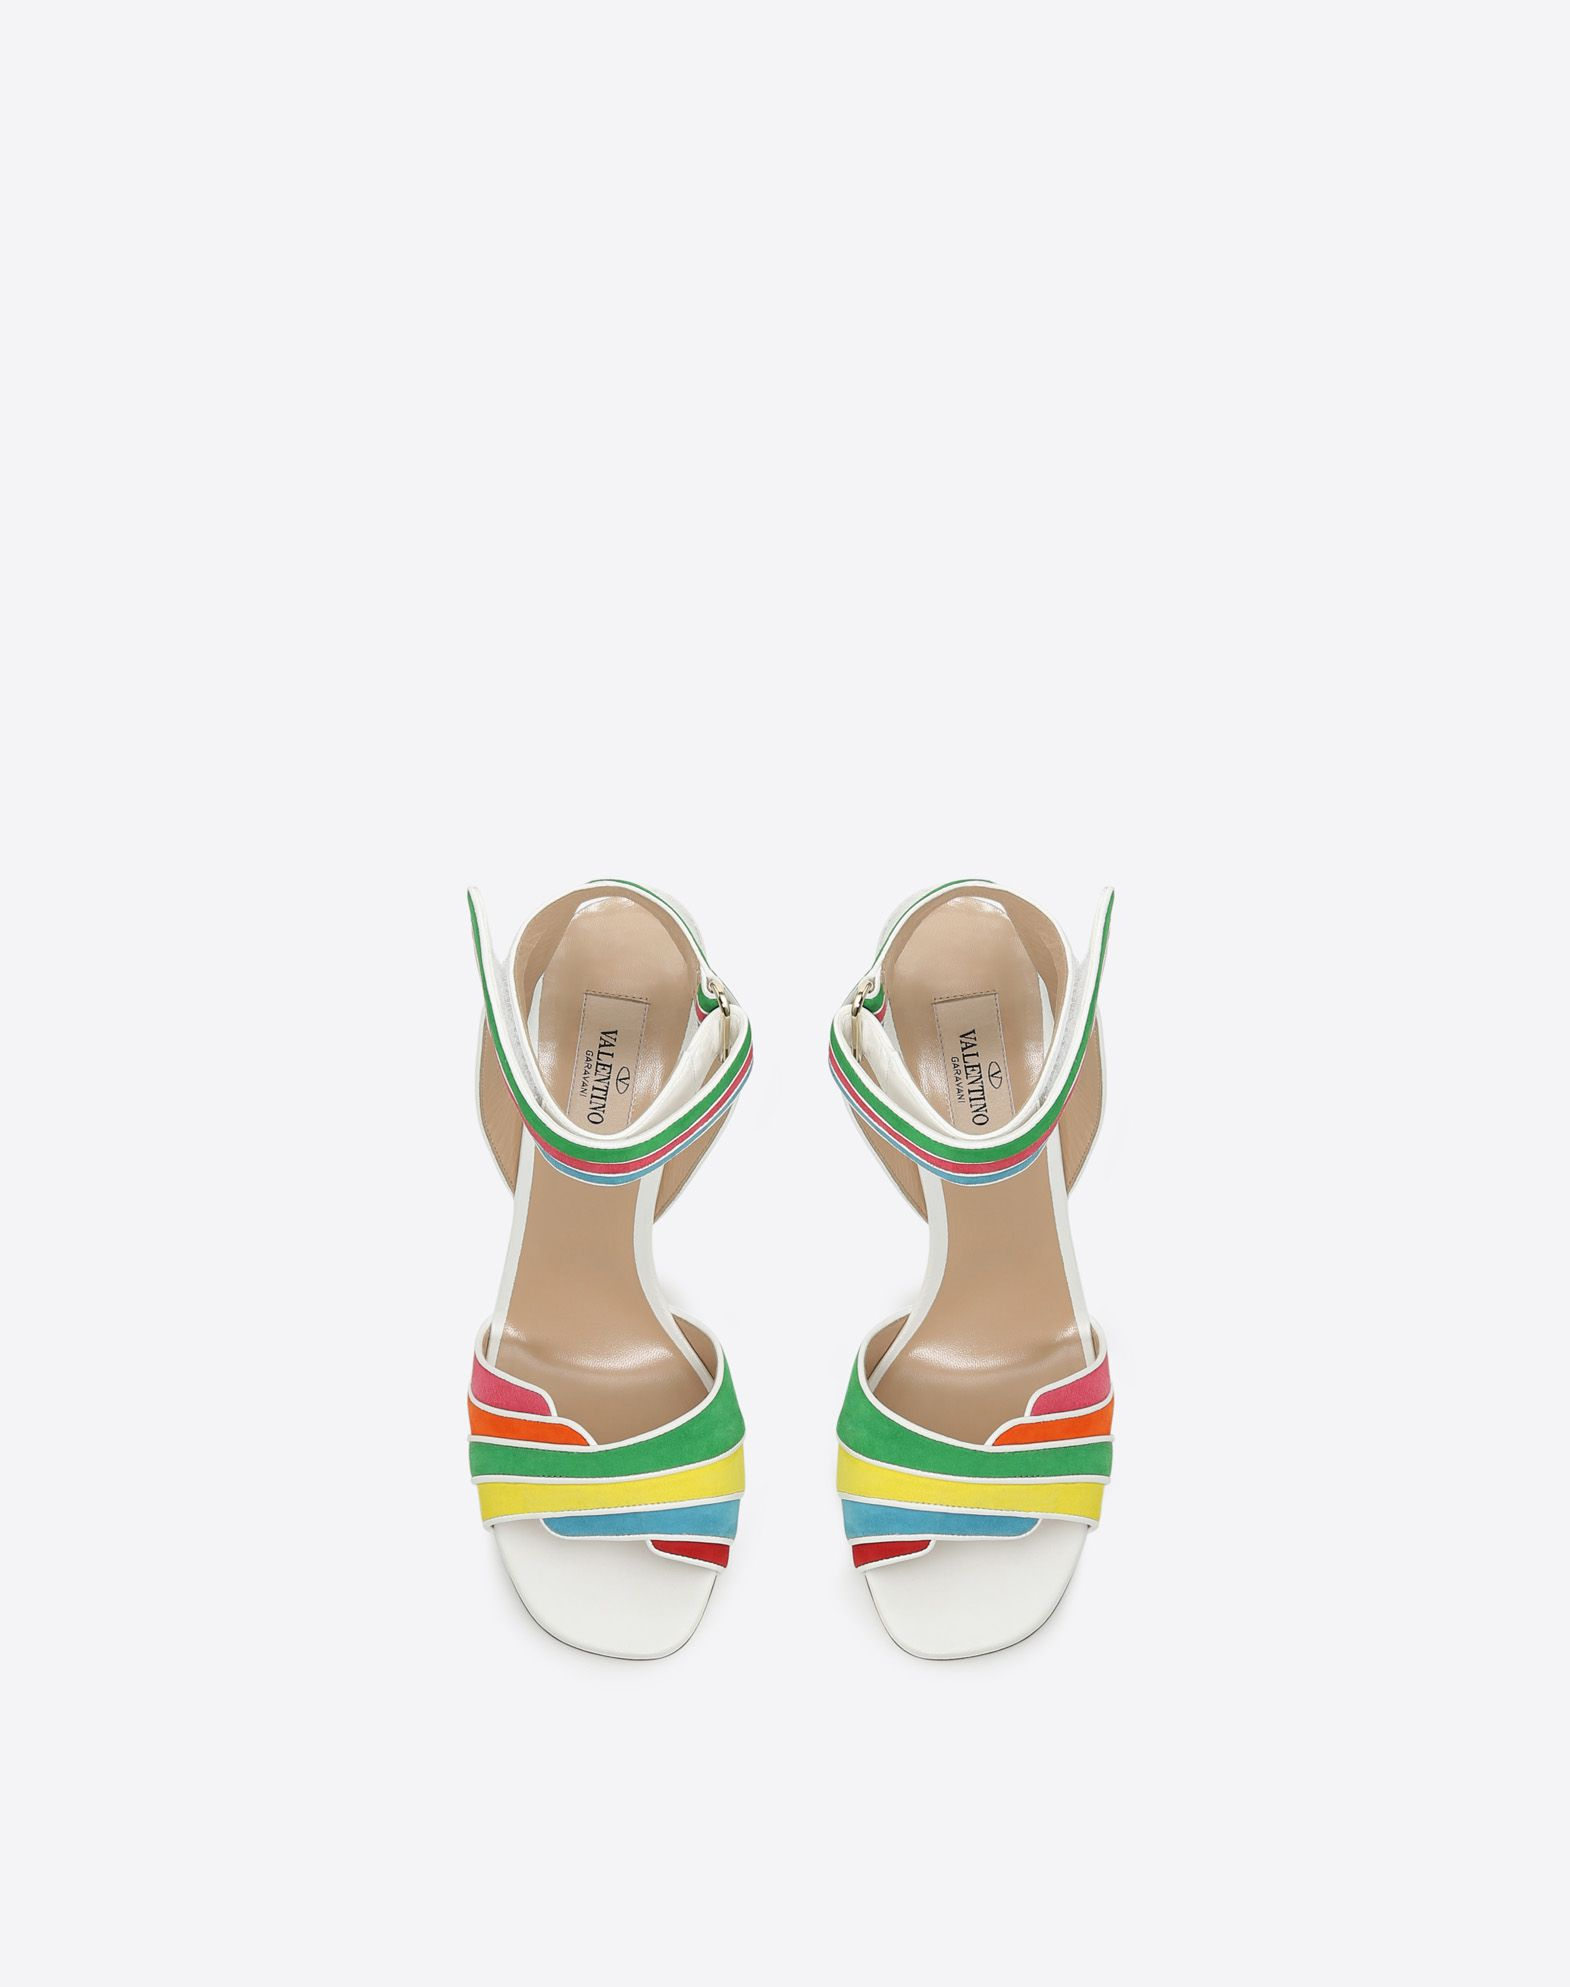 VALENTINO GARAVANI Multi-color suede 105mm Sandal HIGH HEEL SANDALS D e